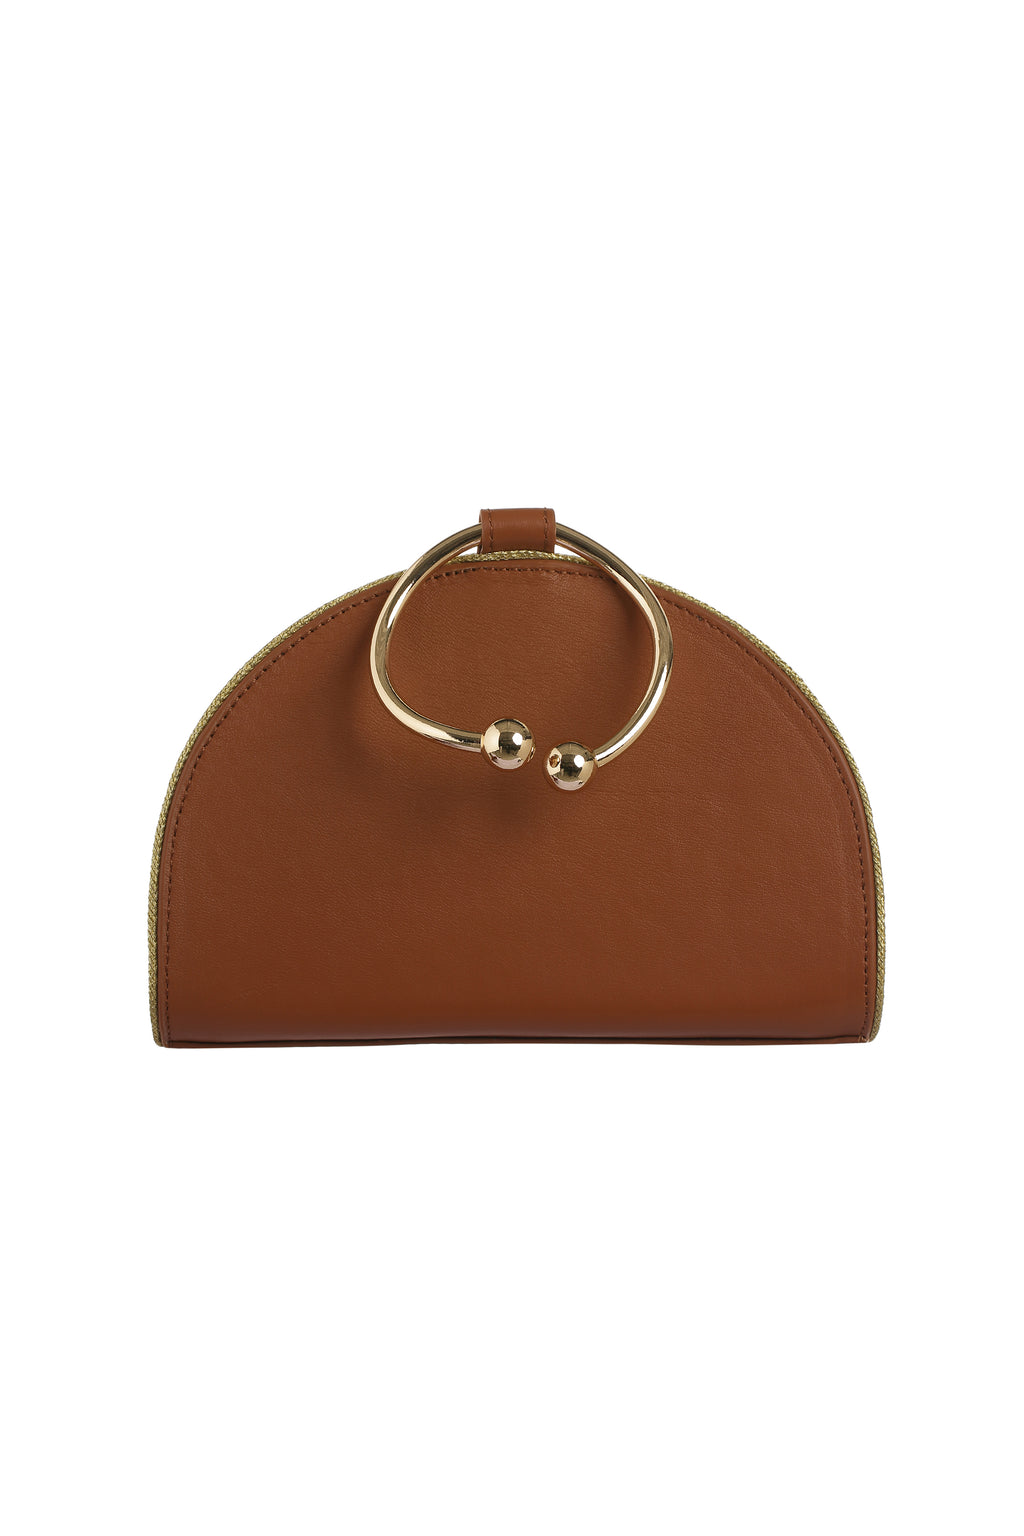 Chelsea Caramel Leather Clutch Bag